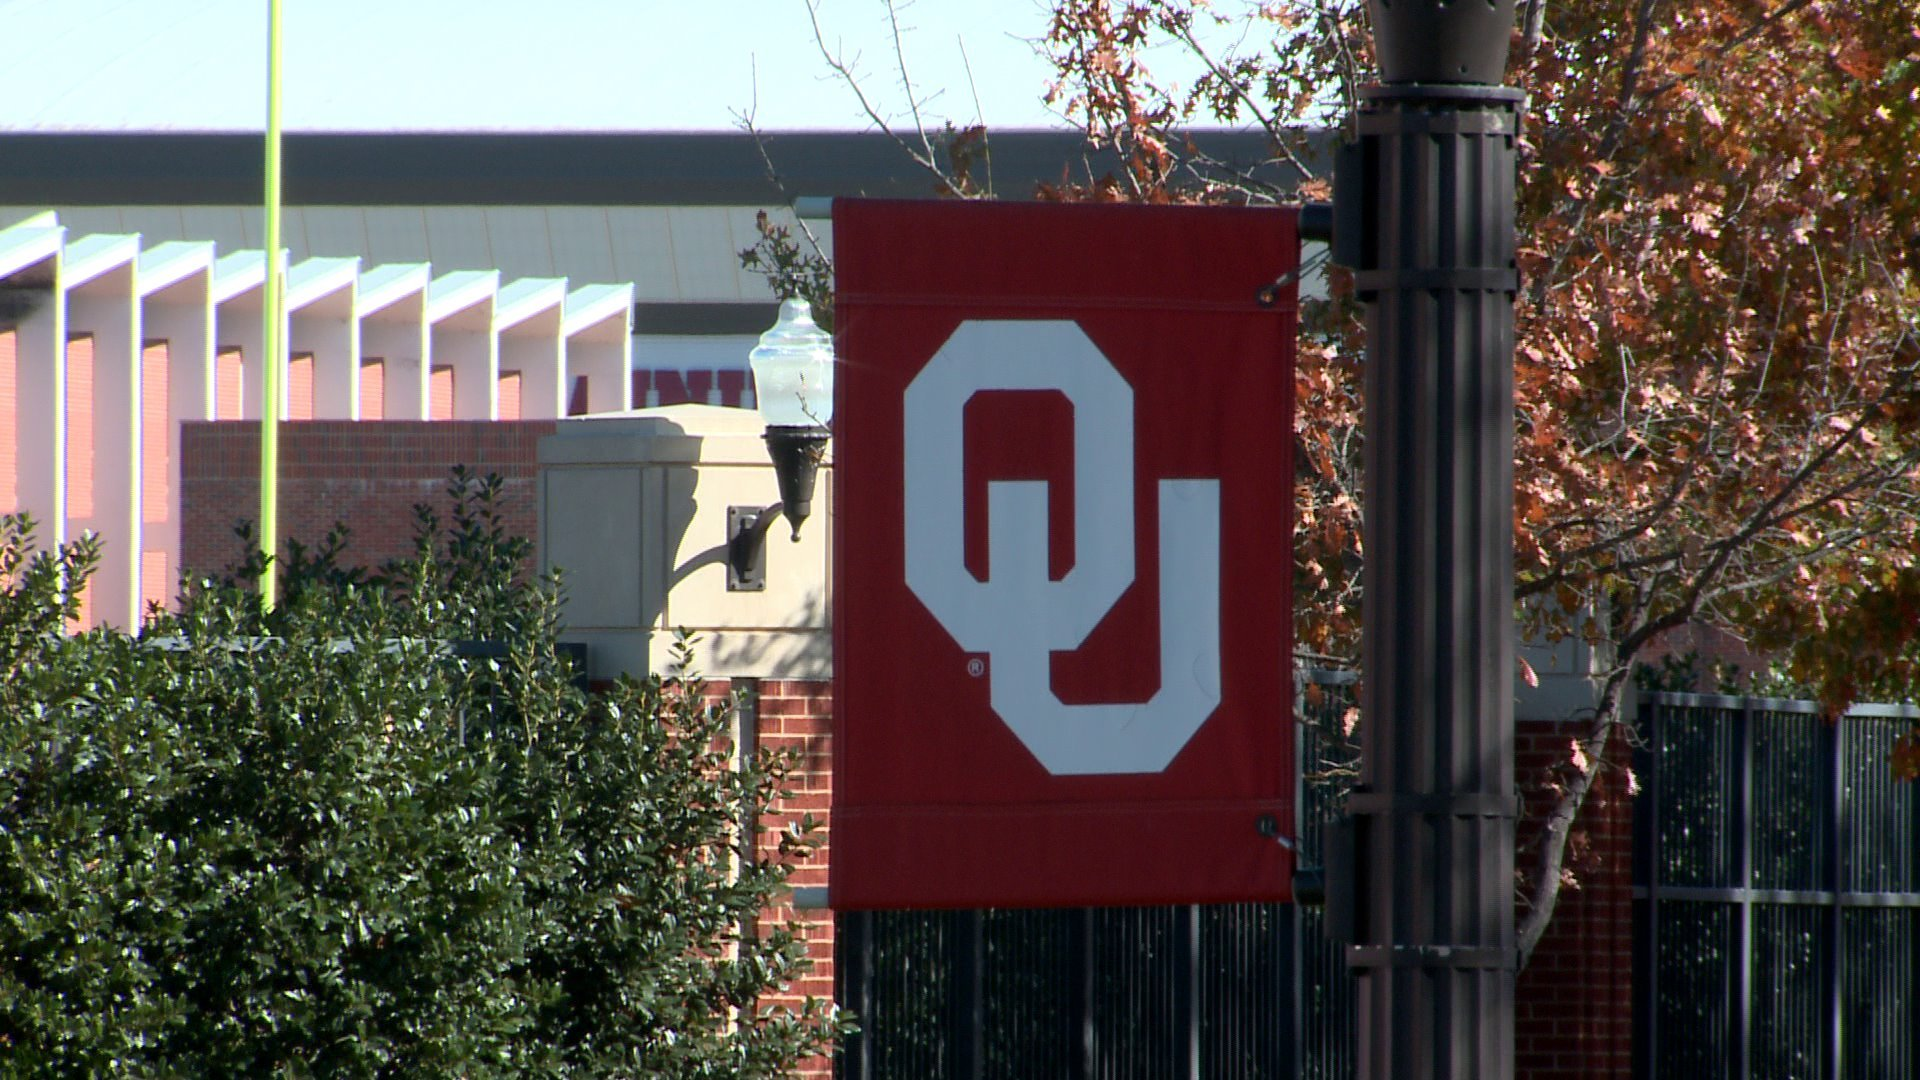 Oklahoma lawmakers concerned over nomination to OU regents